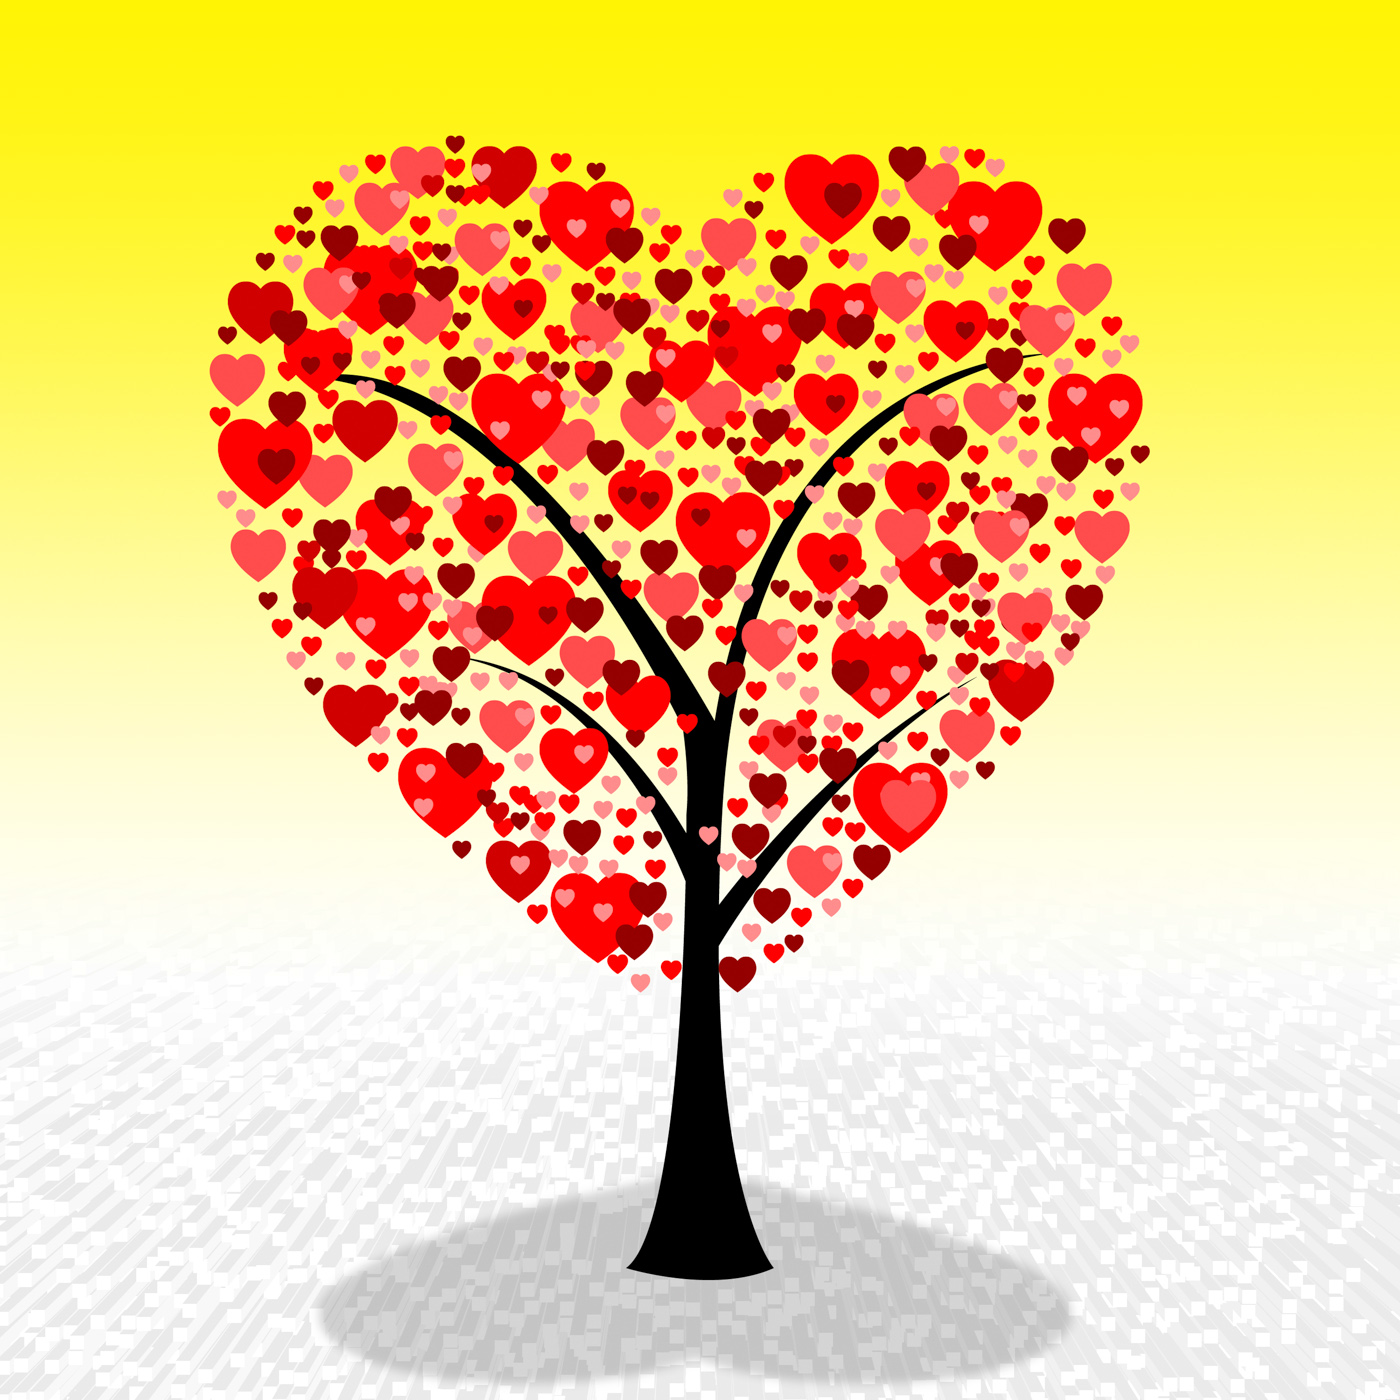 Tree hearts represents valentine day and environment photo